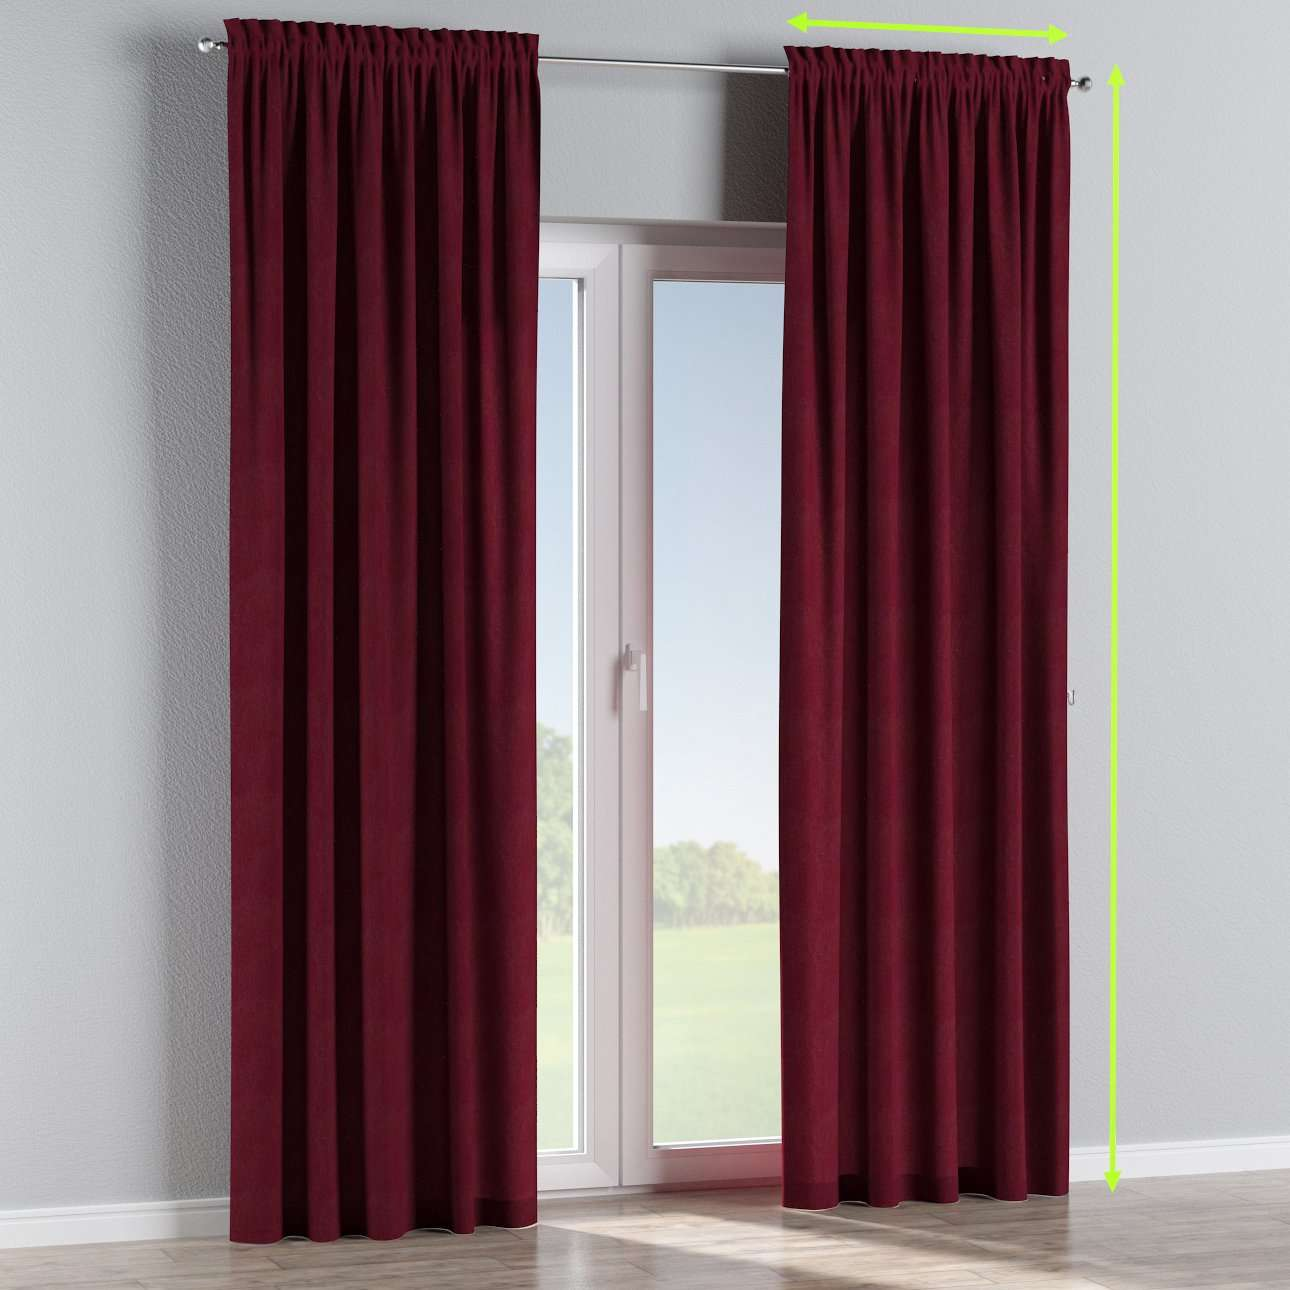 Slot and frill lined curtains in collection Chenille, fabric: 702-19